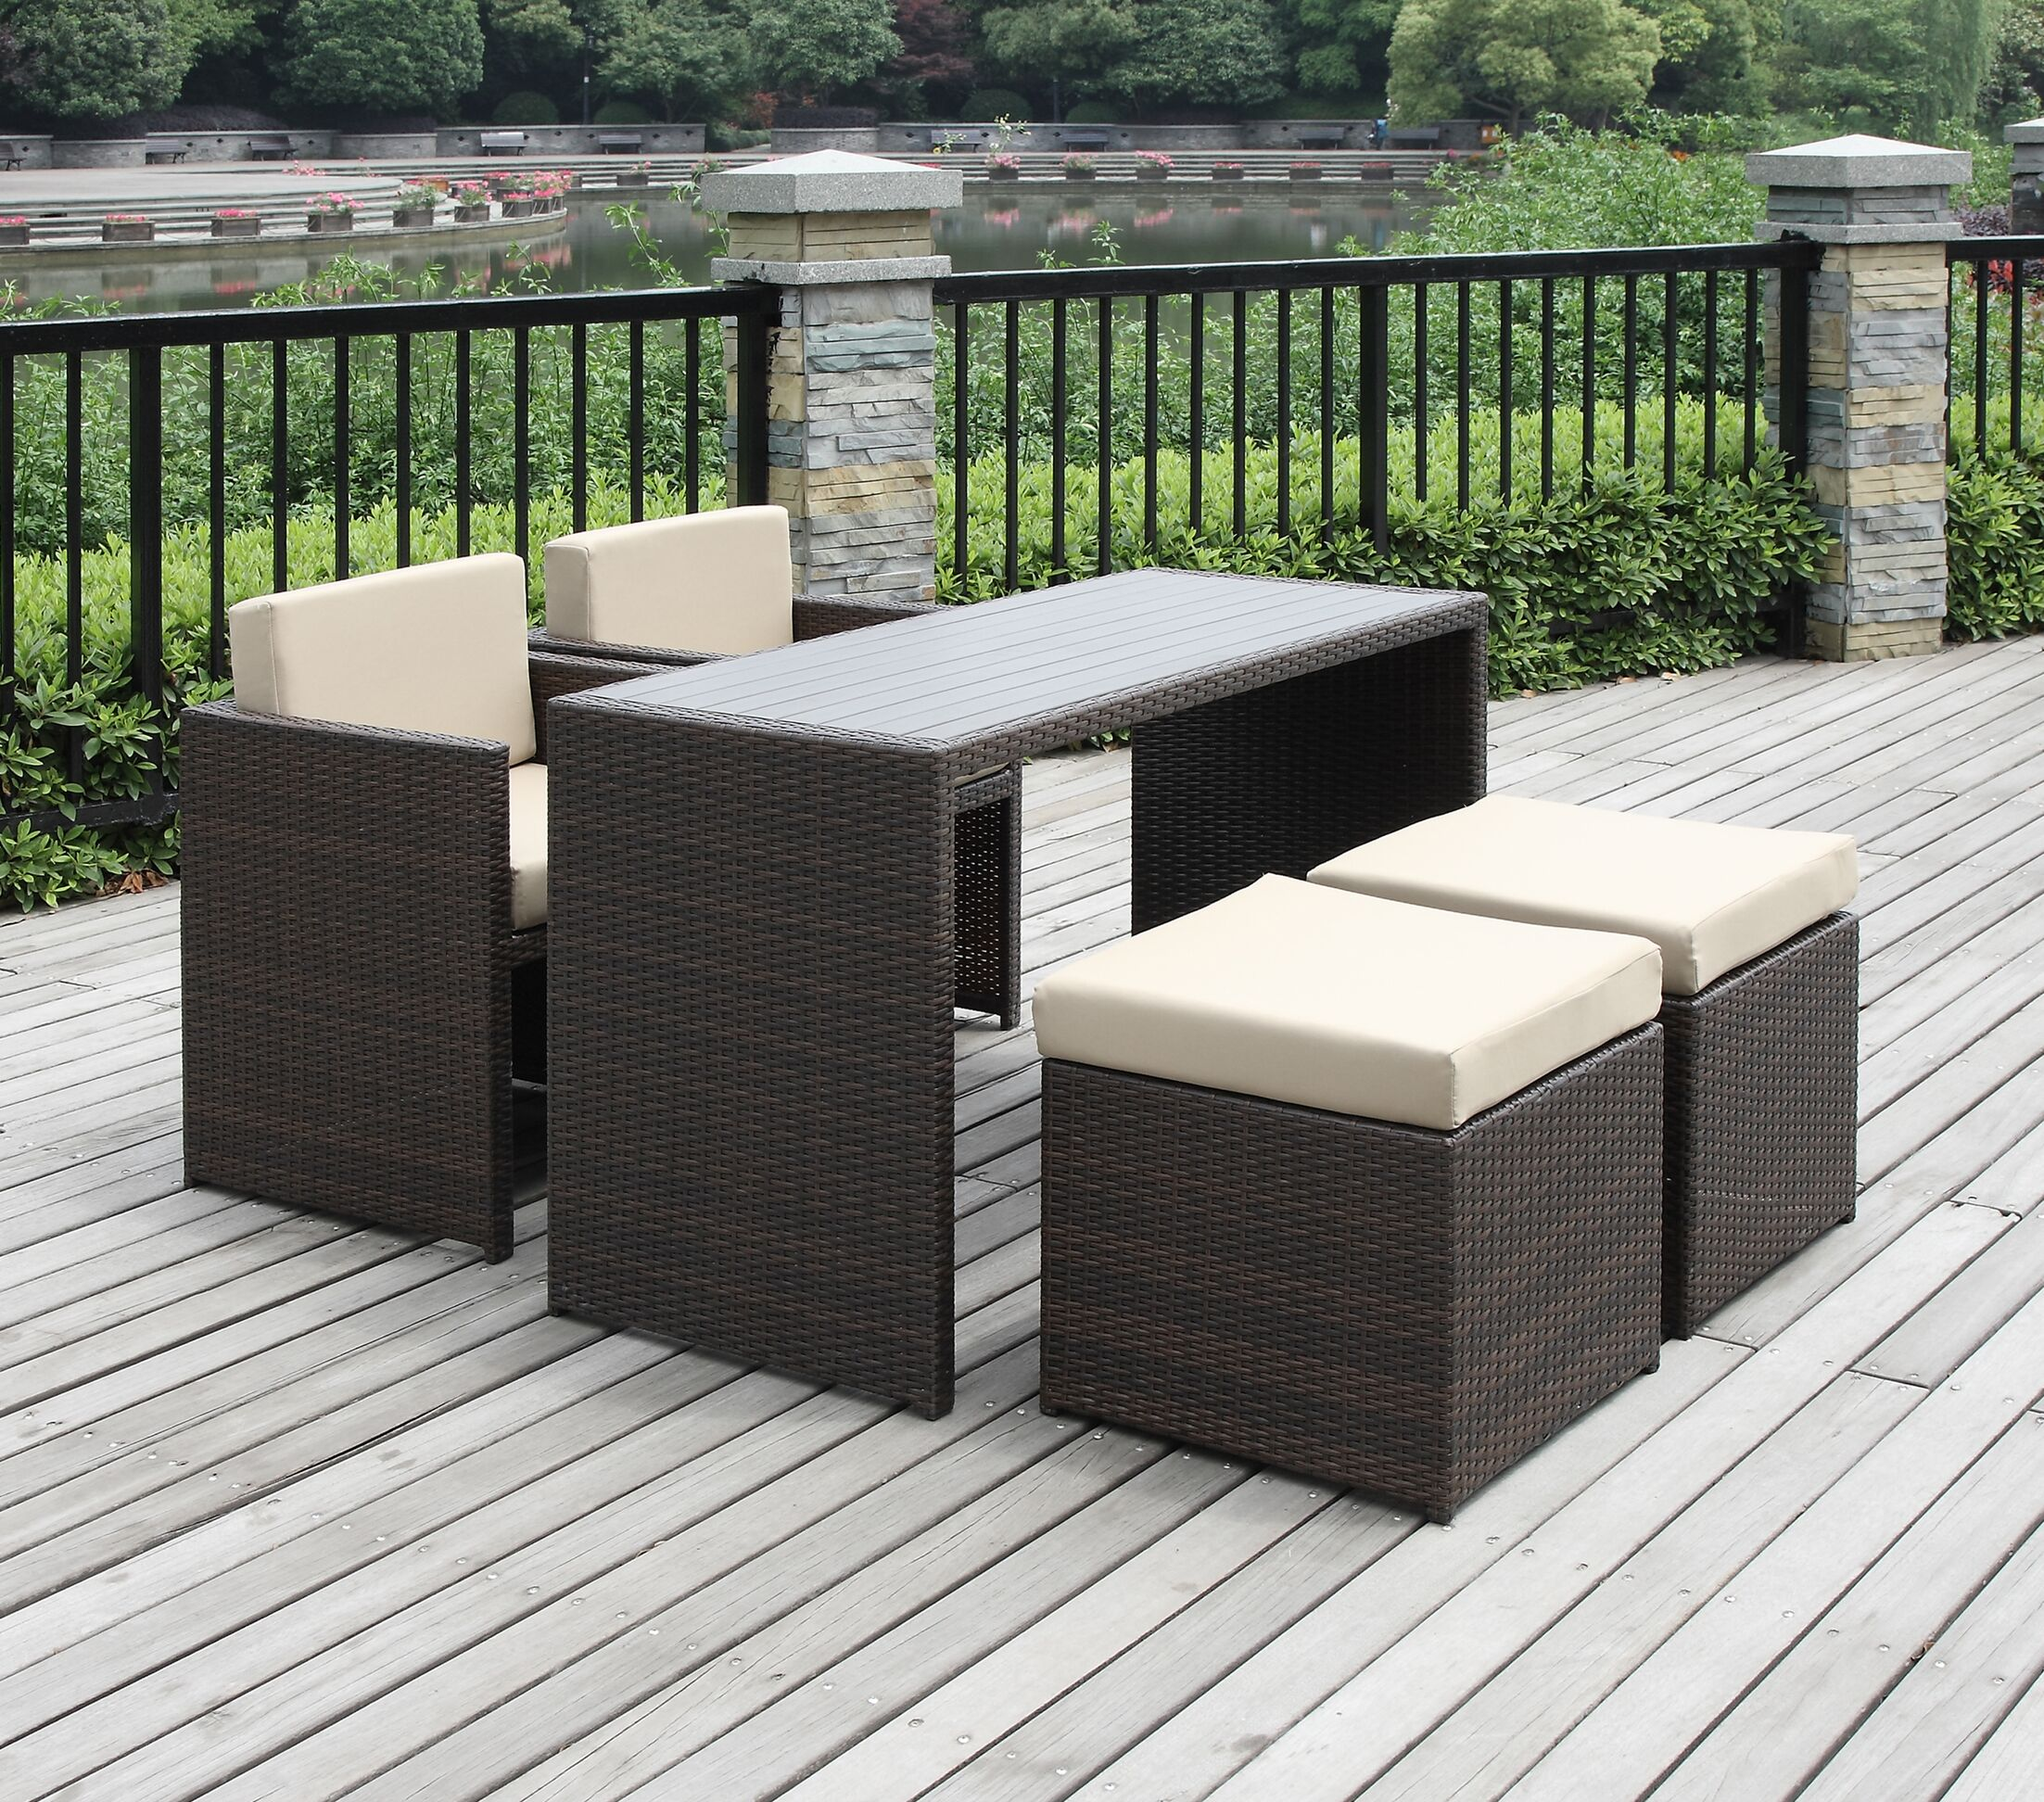 Insley 5 Piece Dining Set with Cushion